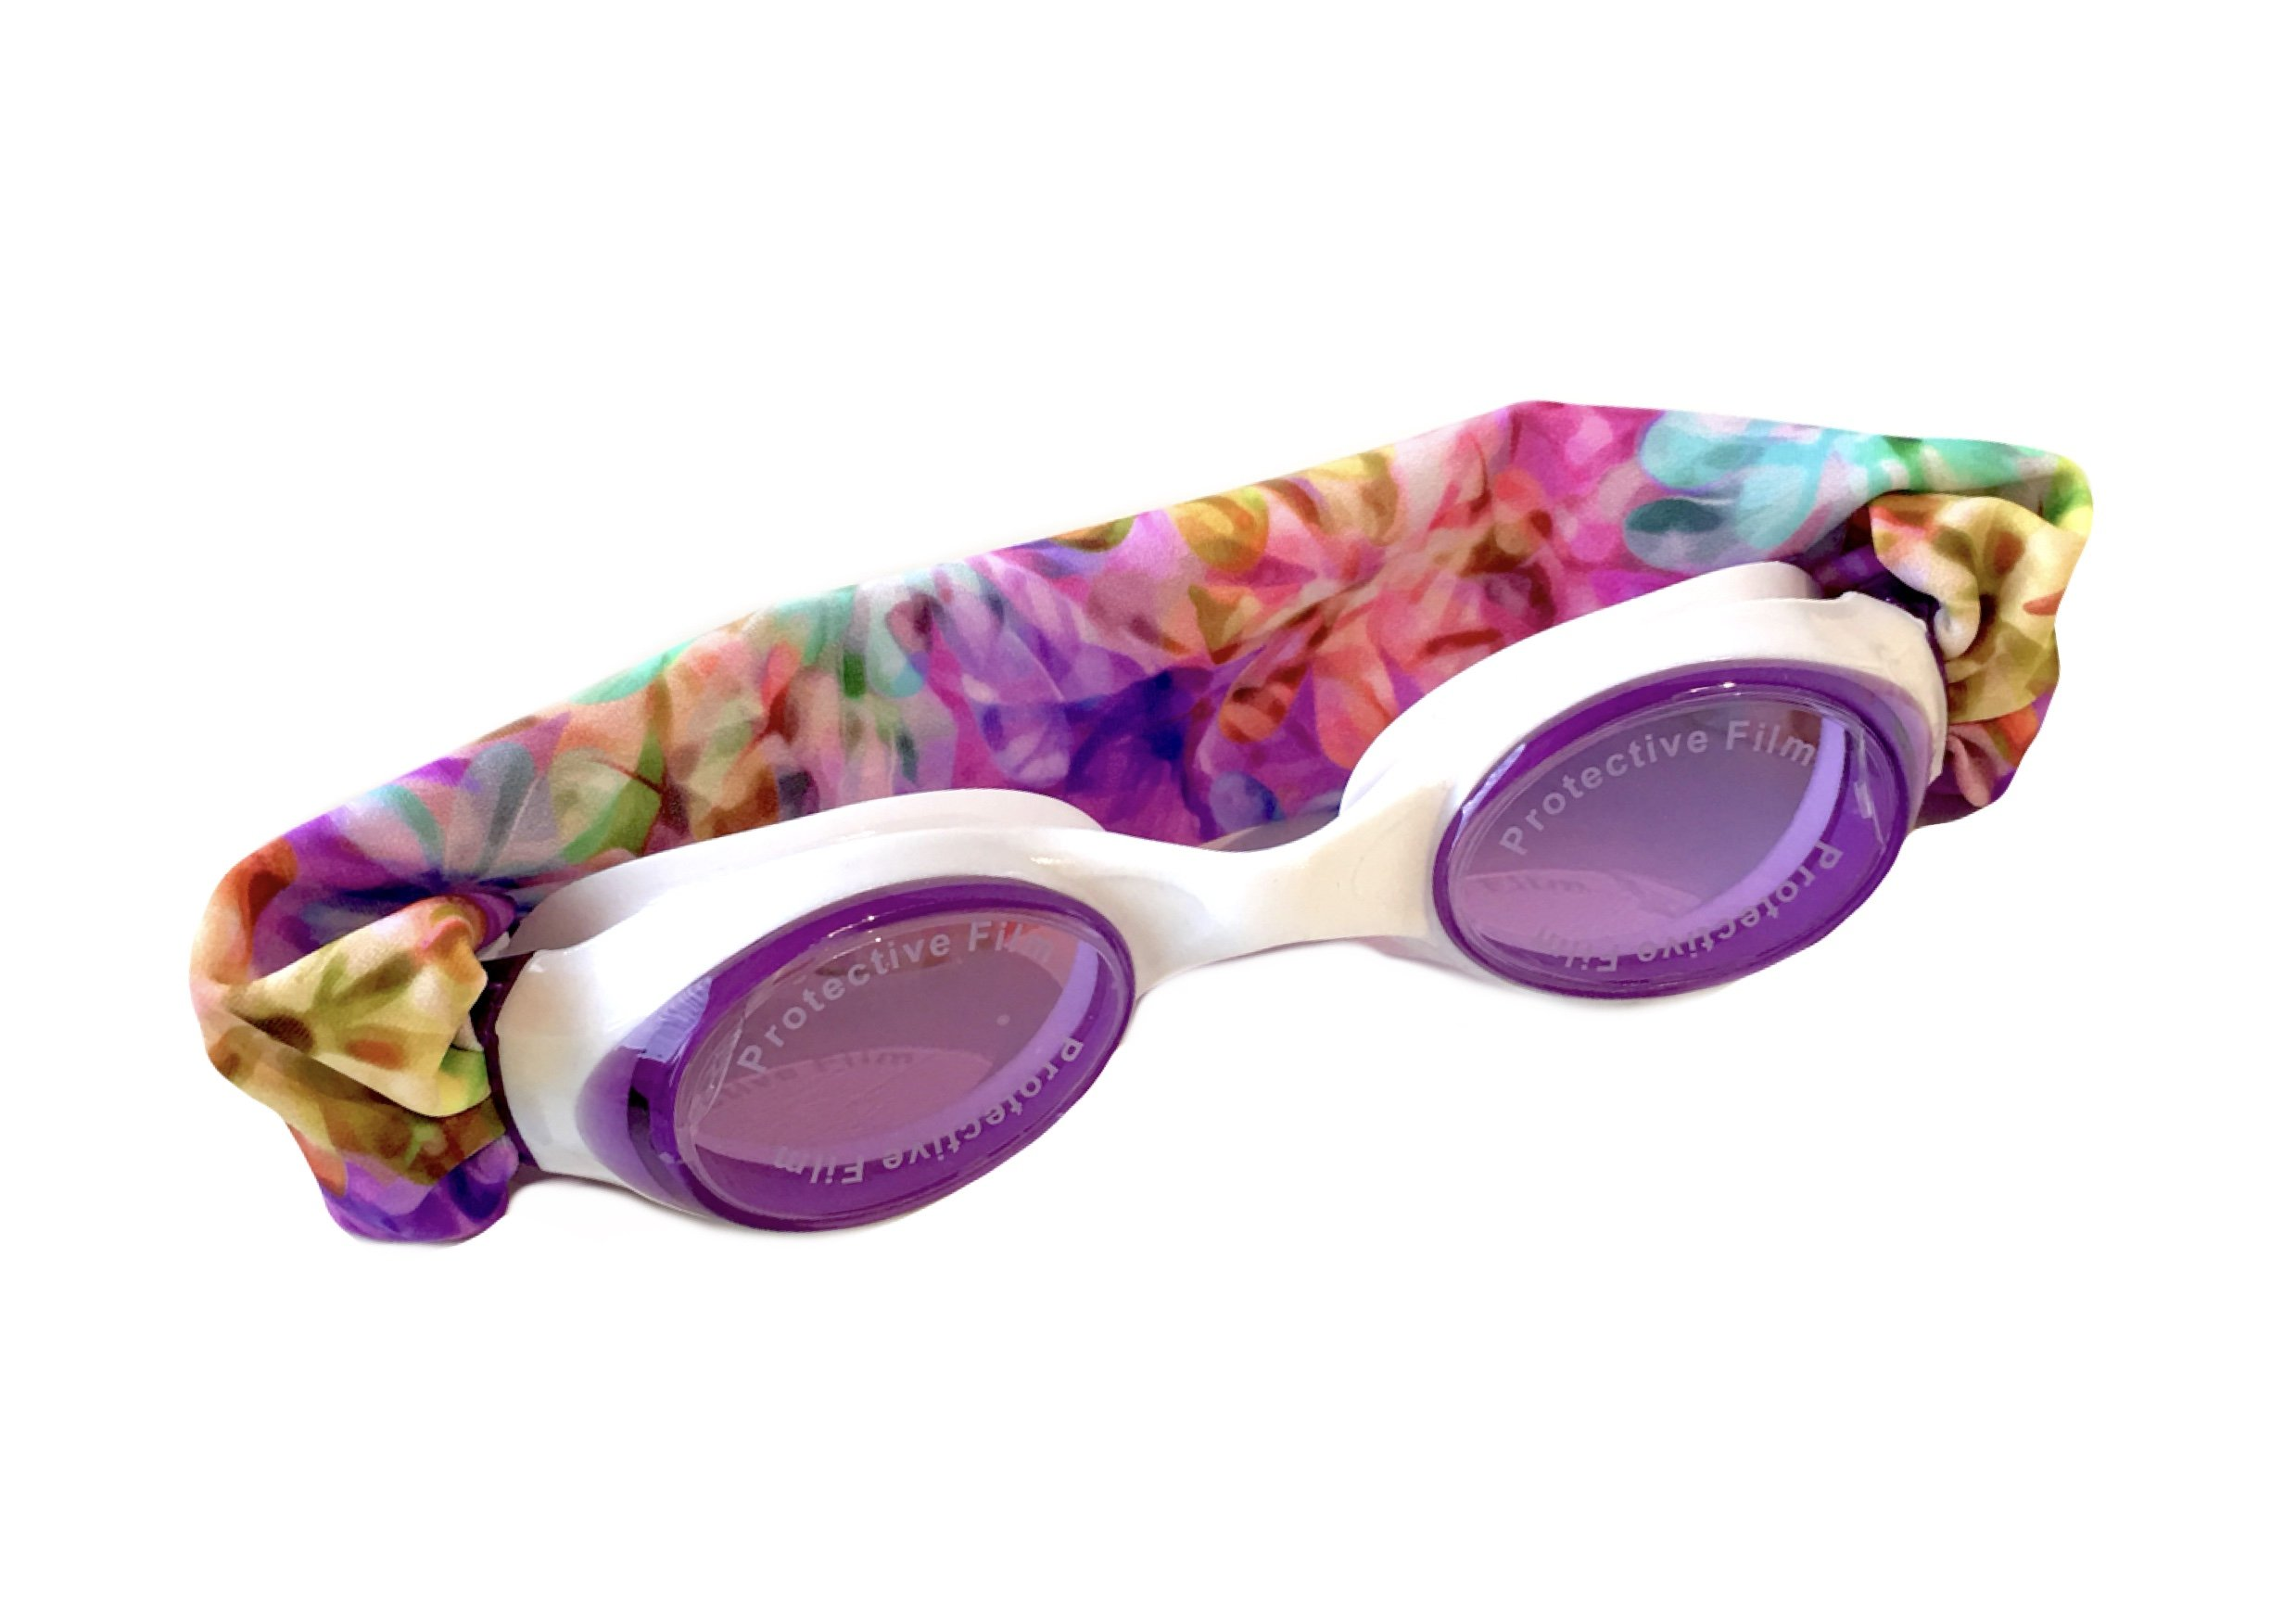 Splash Kaleidoscope Swim Goggles - Fun Fashionable Comfortable - Fits Kids & Adults - Won't Pull Your Hair - Easy to Use - High Visibility Anti-Fog Lenses - Patent Pending